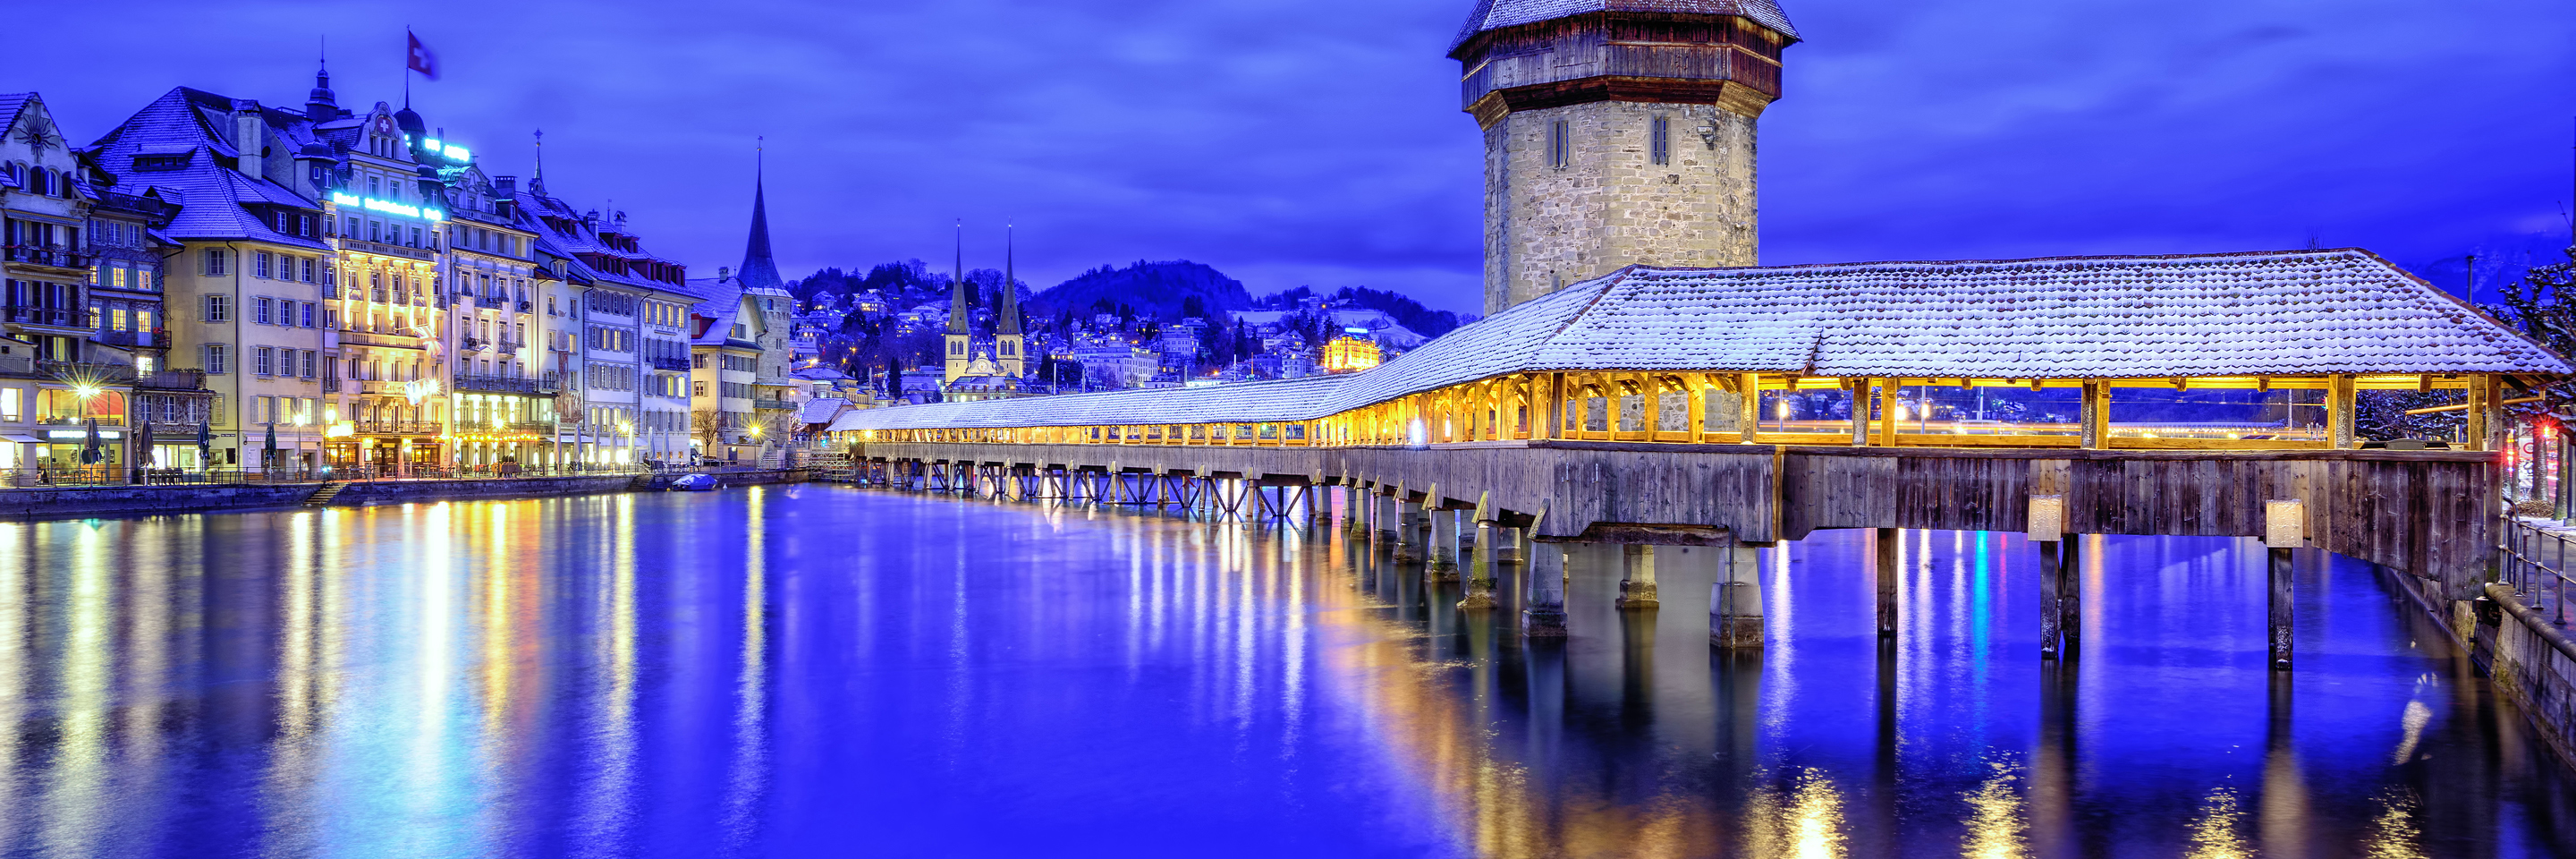 Festive Time on the Romantic   Rhine with Mount Pilatus, 1 Night in Lucerne & 3 Nights in Lake Como   (Southbound)